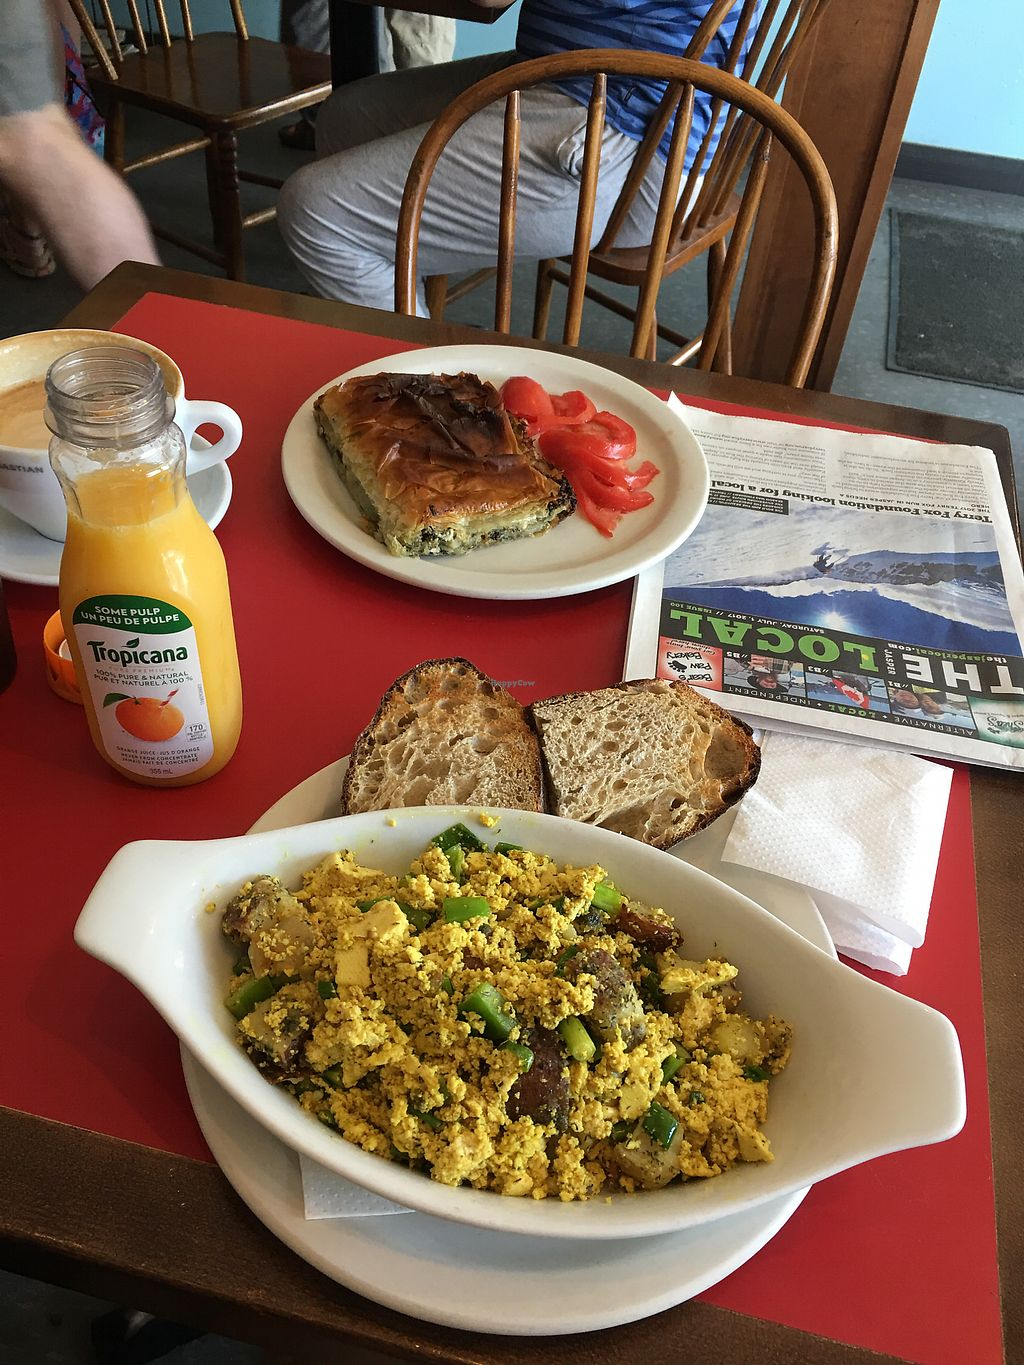 """Photo of Coco's Cafe  by <a href=""""/members/profile/veganismrevolution"""">veganismrevolution</a> <br/>backpacker skillet for me.  <br/> July 8, 2017  - <a href='/contact/abuse/image/15433/277766'>Report</a>"""